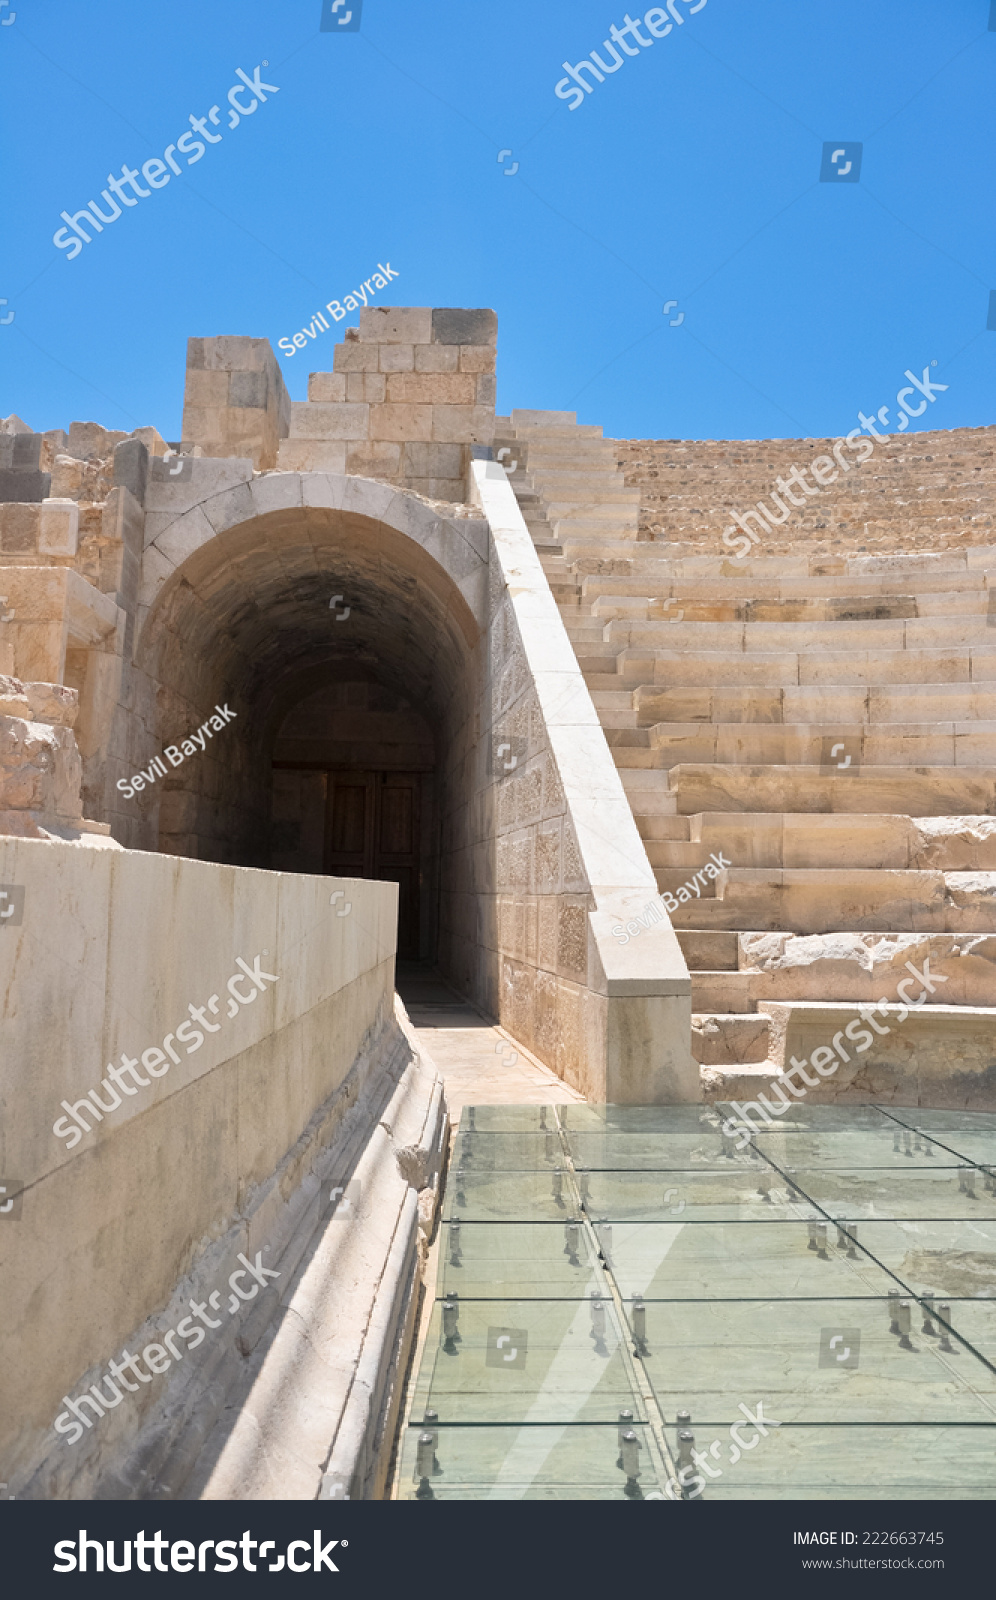 Ancient City Patara Turkey Stock Photo 222663745 ...